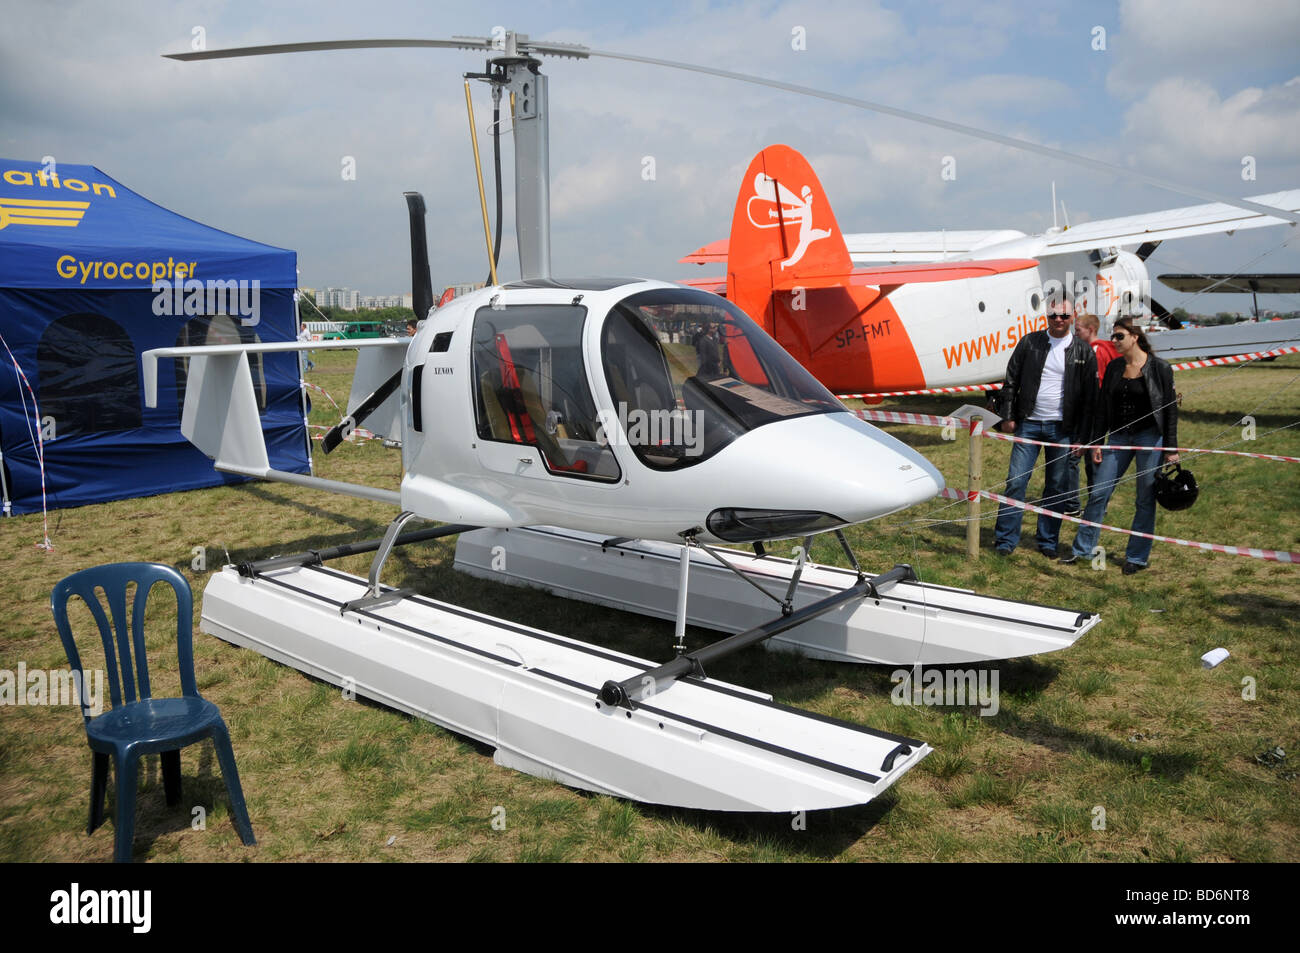 buy ultralight helicopter with Stock Photo Xenon 2 Model Of Autogyro Also Called Gyrocopter Or Gyroplane 25349752 on 150382801734 further Rotor Fx In Van Nuys Sells Affordable Choppers likewise Jetpack Invention Reaches 5 000ft Futuristic Transport Gets Closer  mercial Use as well 03573 together with Carat A videos.